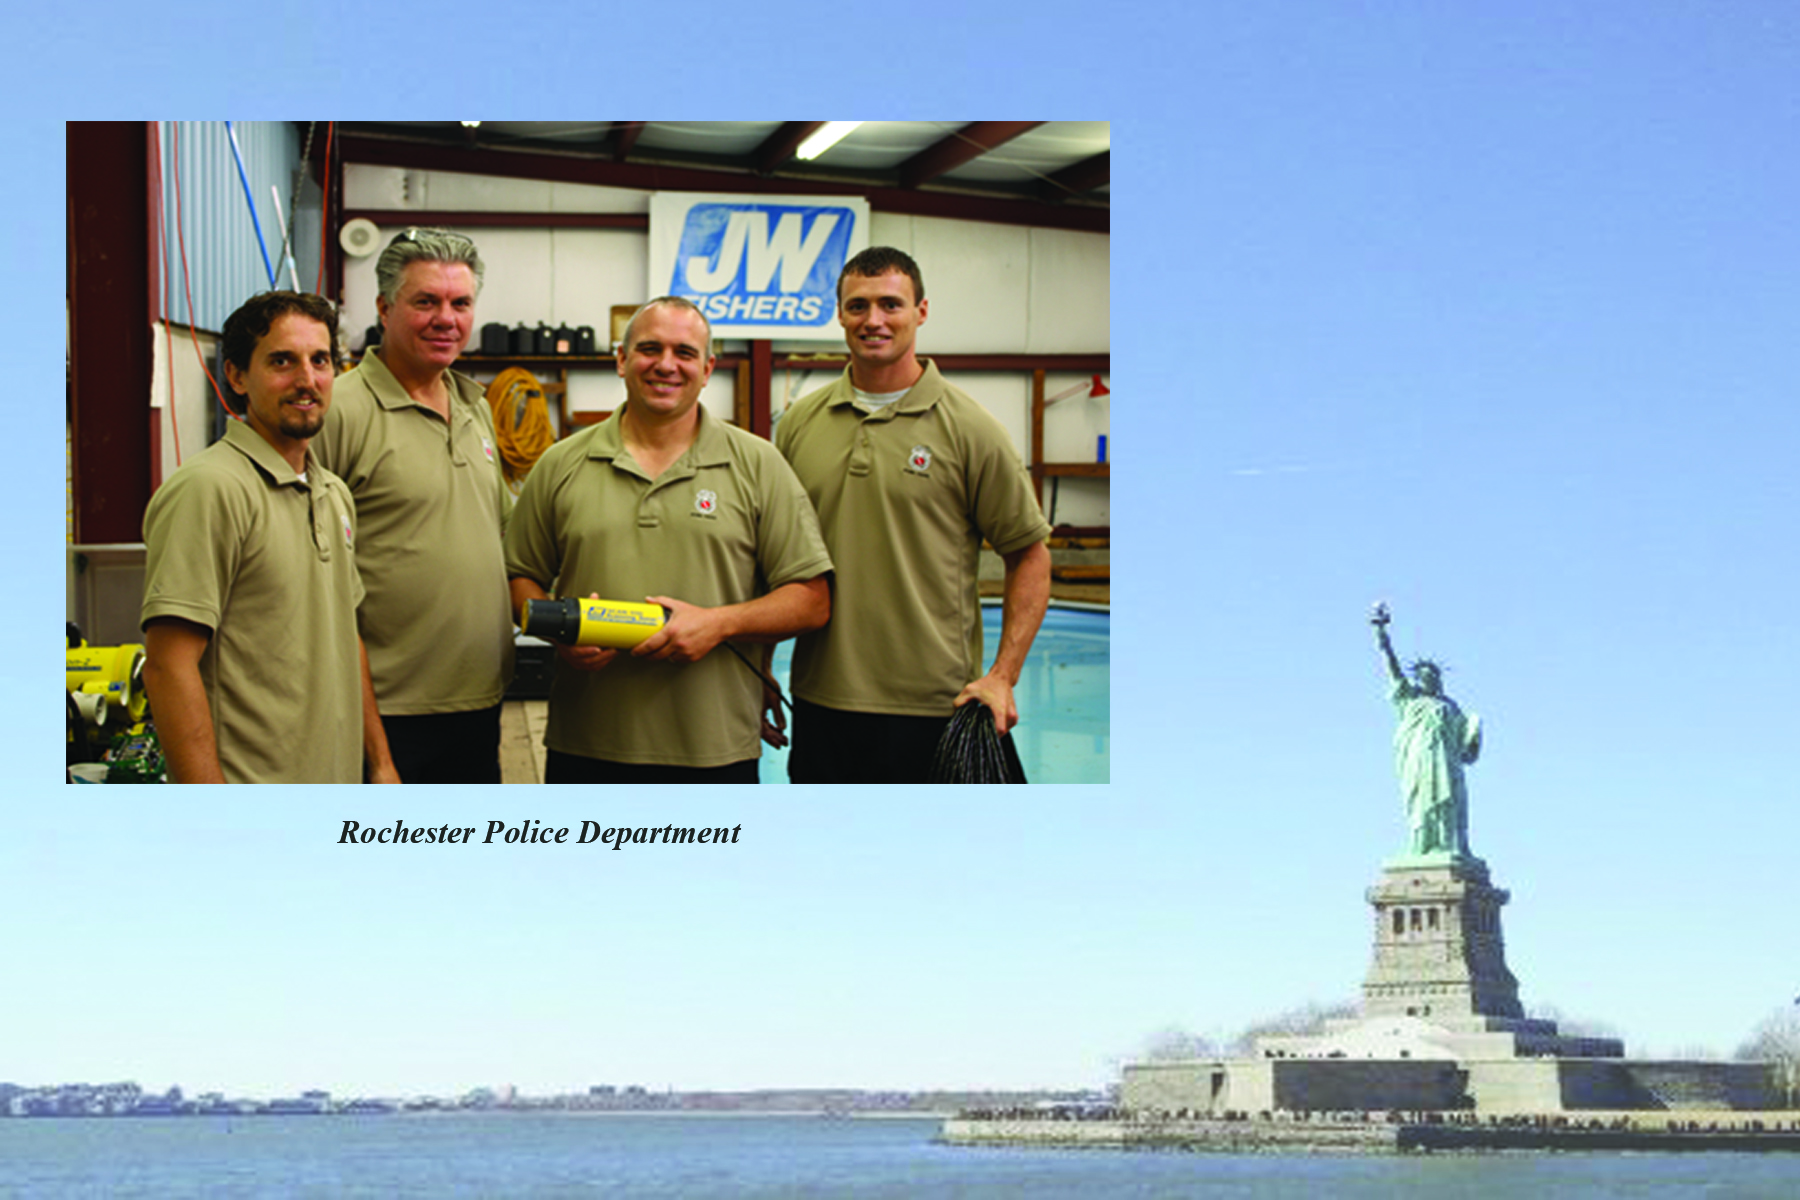 JW Fishers ROVs Used by Agencies Throughout New York